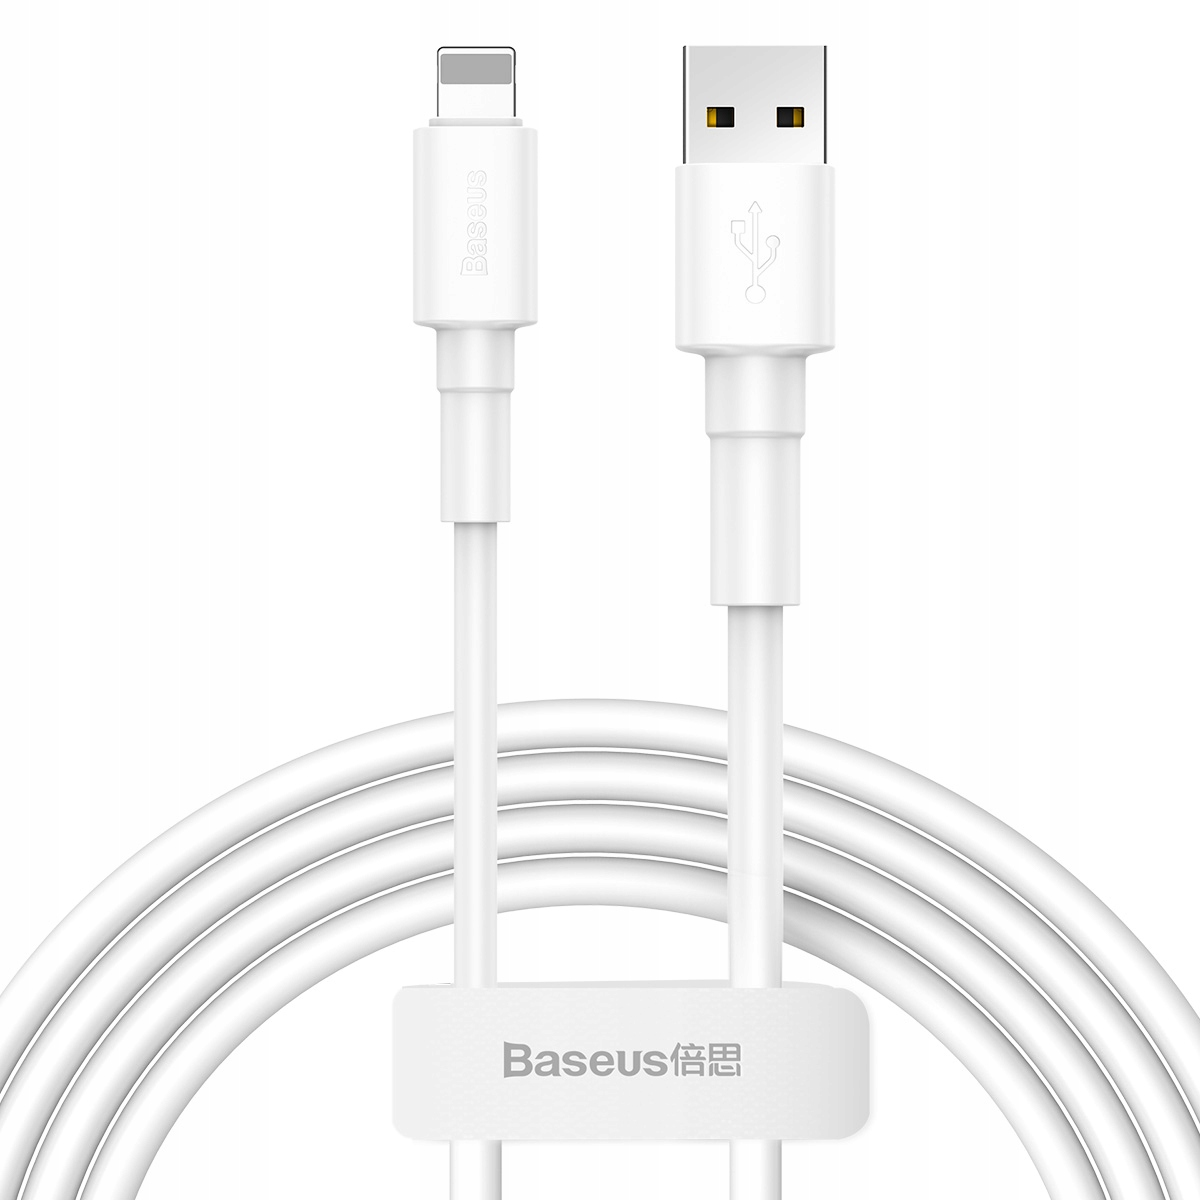 Item Baseus high speed Lightning USB cable for iPhone 1m